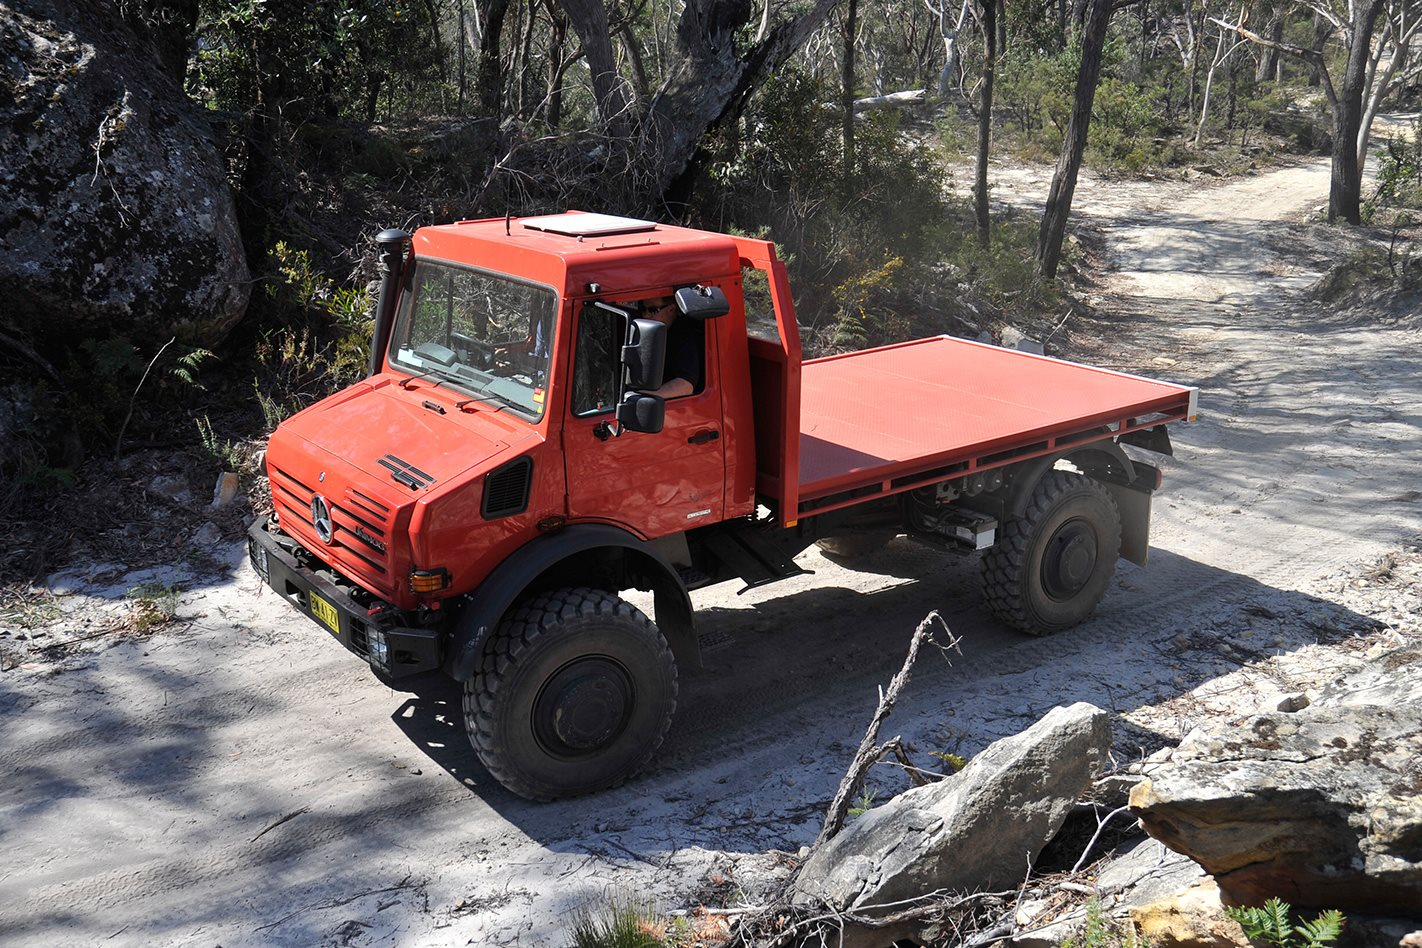 Mercedes Benz Unimog U5000 driving